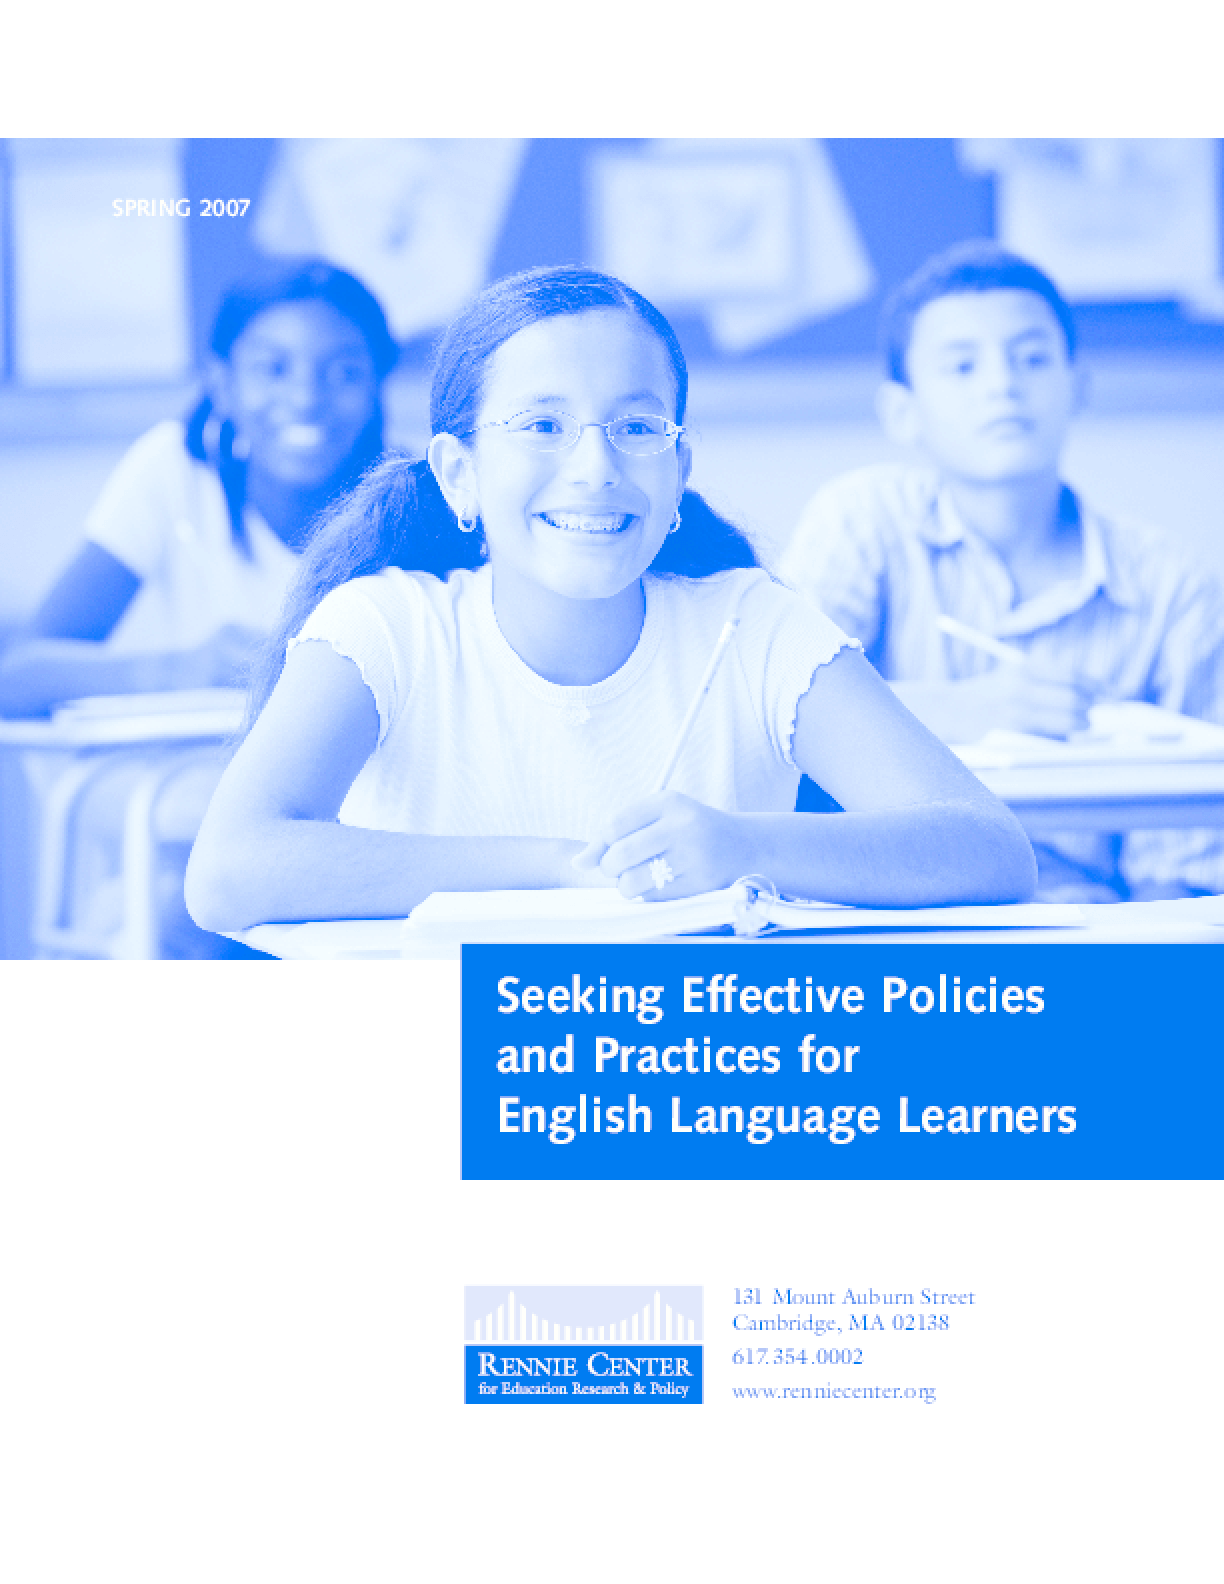 Seeking Effective Policies and Practices for English Language Learners